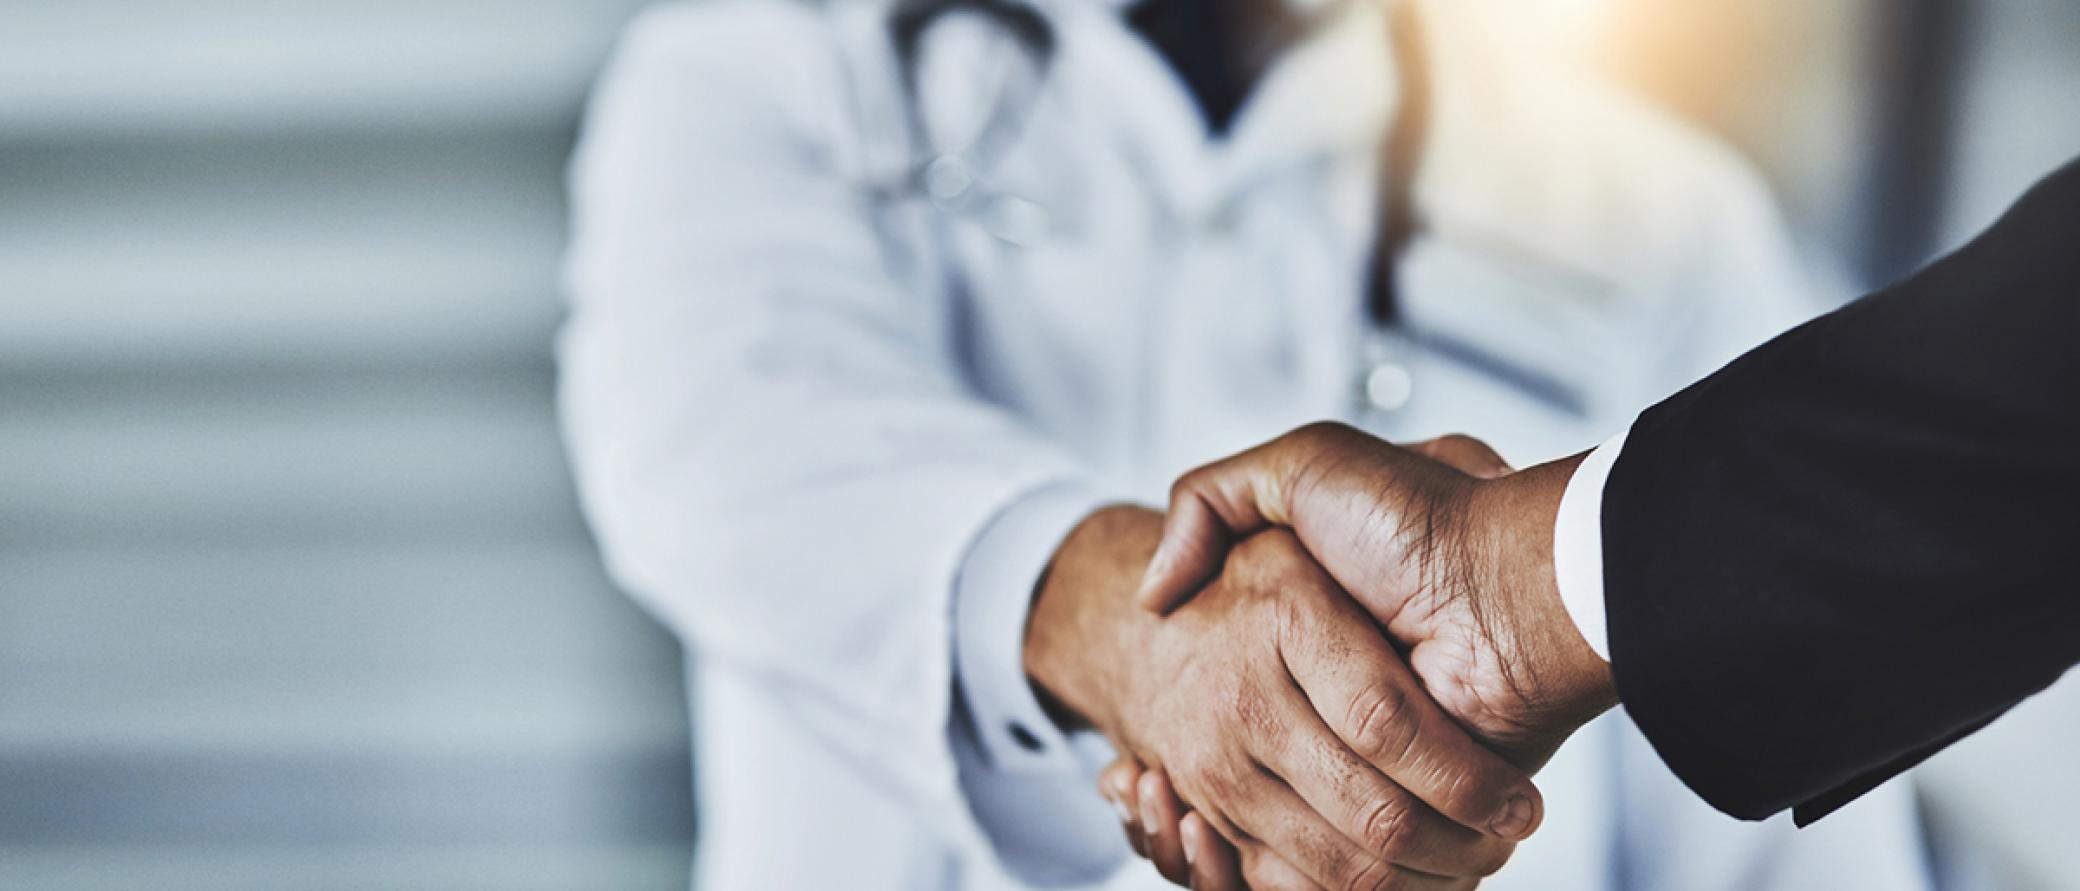 Doctor in white coat shaking hand with a potential hire in business suit